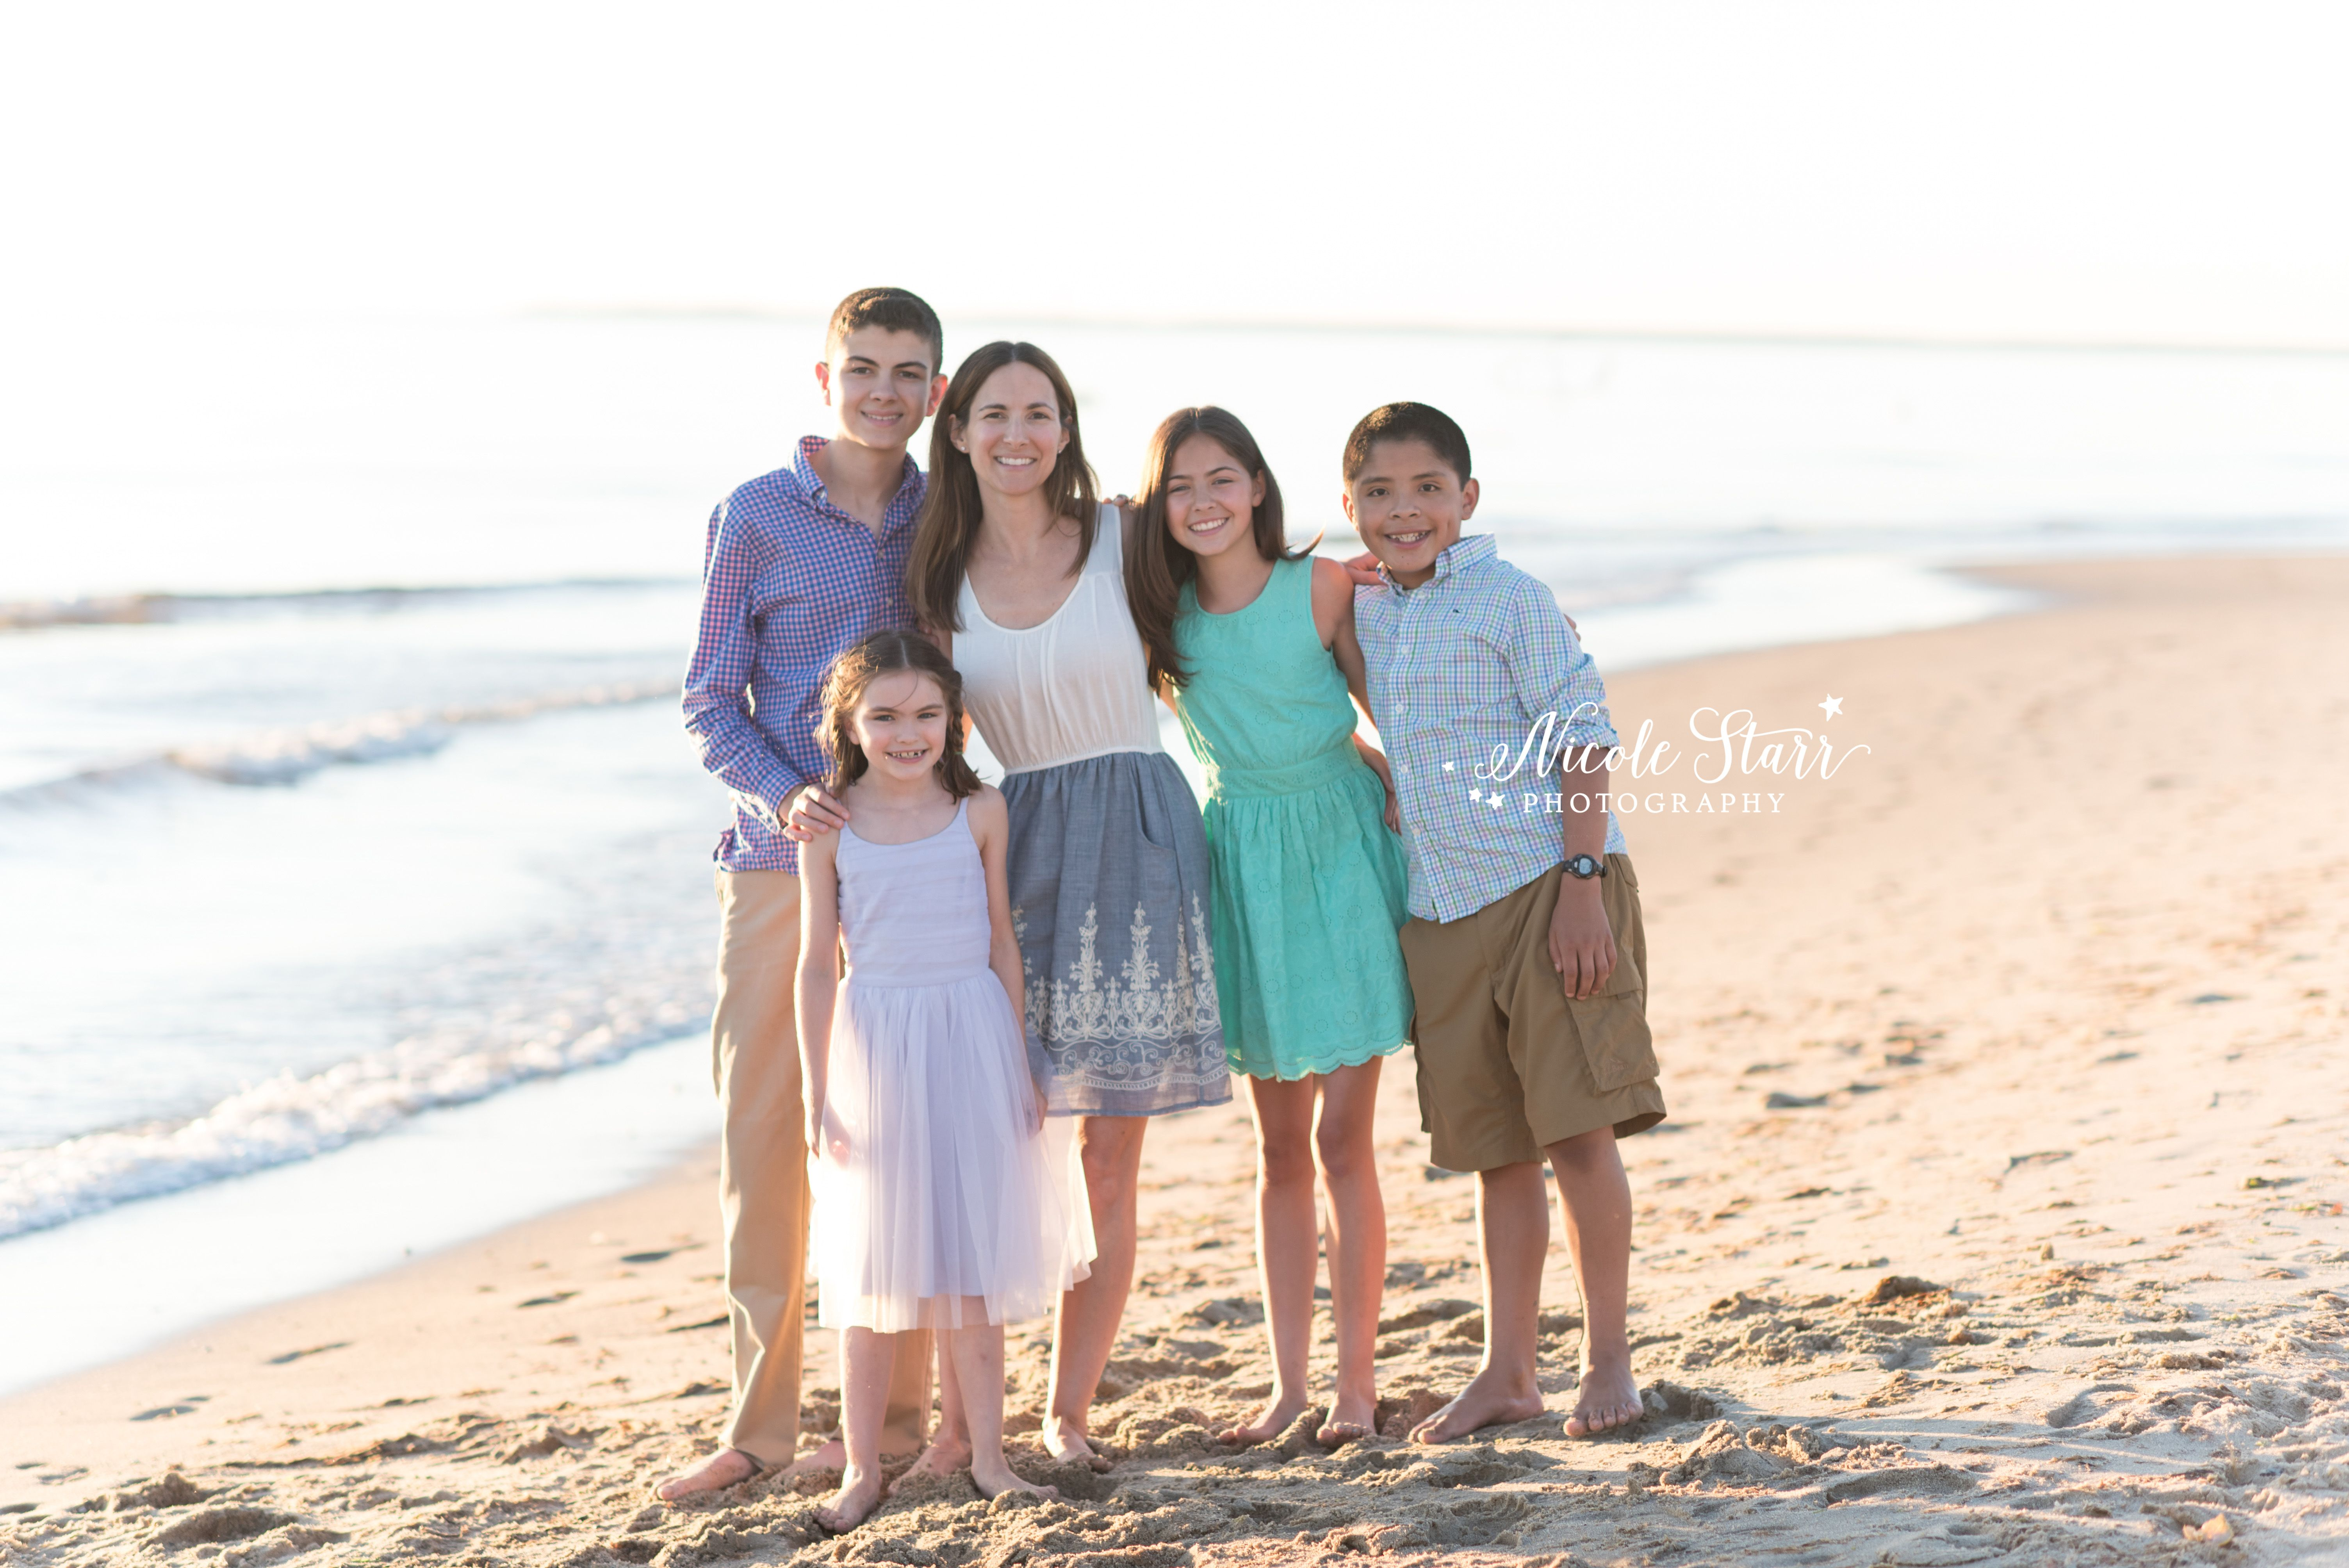 Nicole Starr Photography | Cape Cod Family Photographer